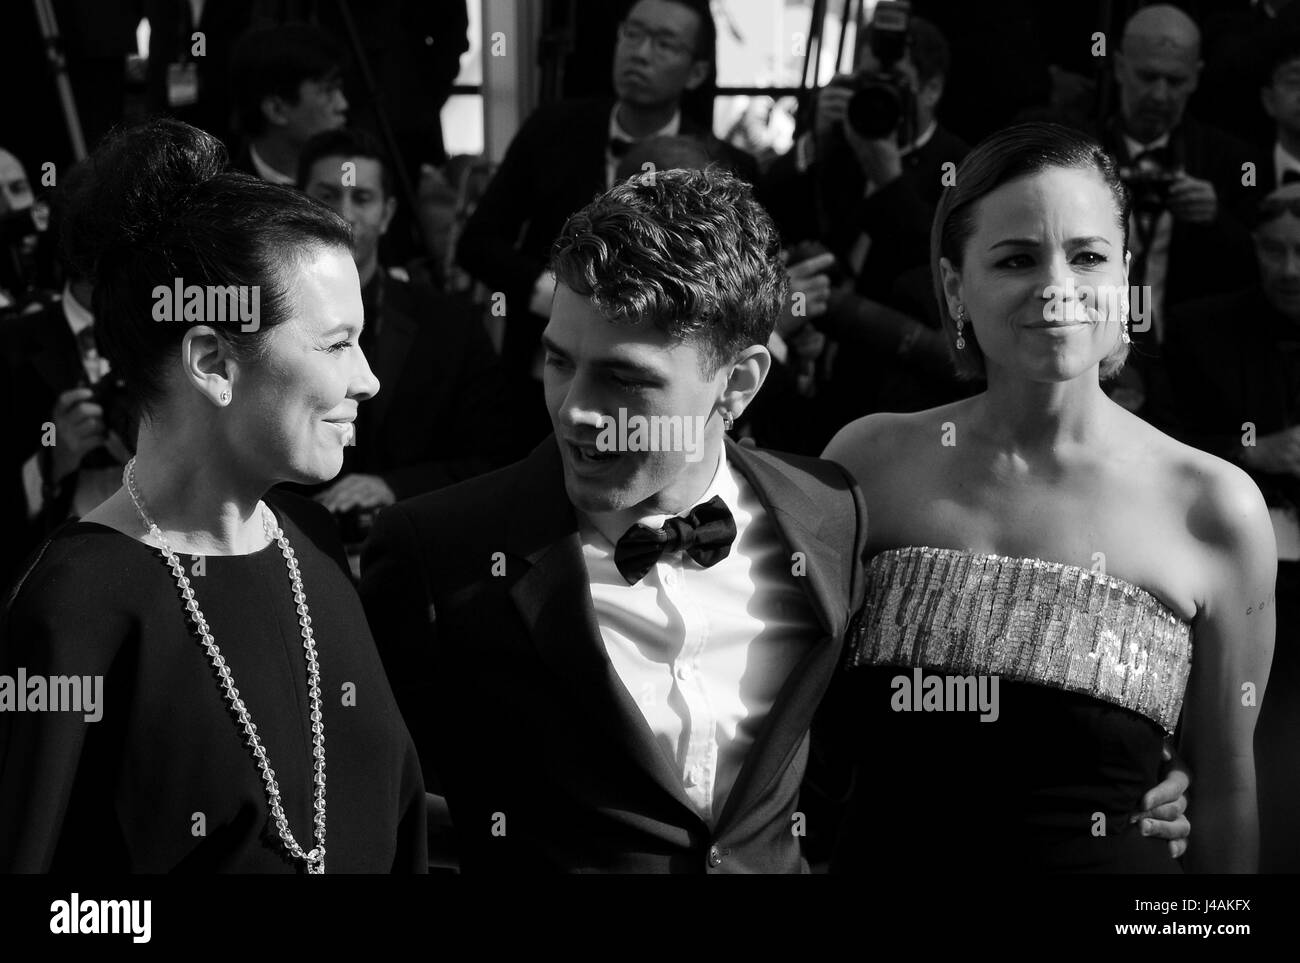 May  14th, 2014 - Cannes  Celebrities attend the 67th Cannes Film Festival - Stock Image